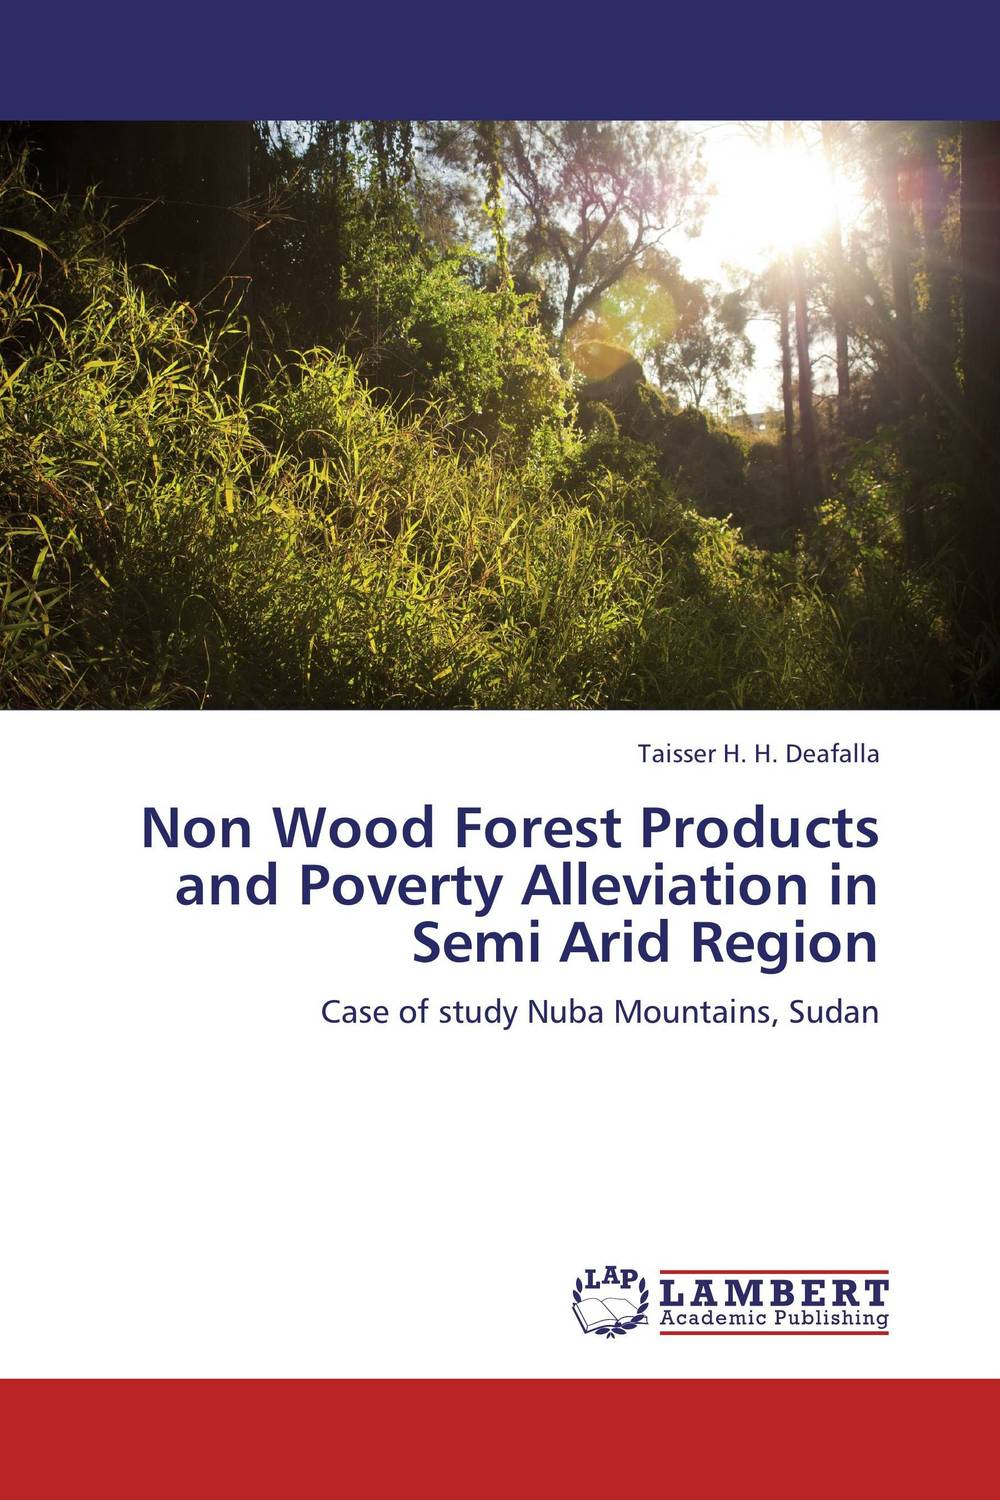 Non Wood Forest Products and Poverty Alleviation   in Semi Arid Region taisser h h deafalla non wood forest products and poverty alleviation in semi arid region